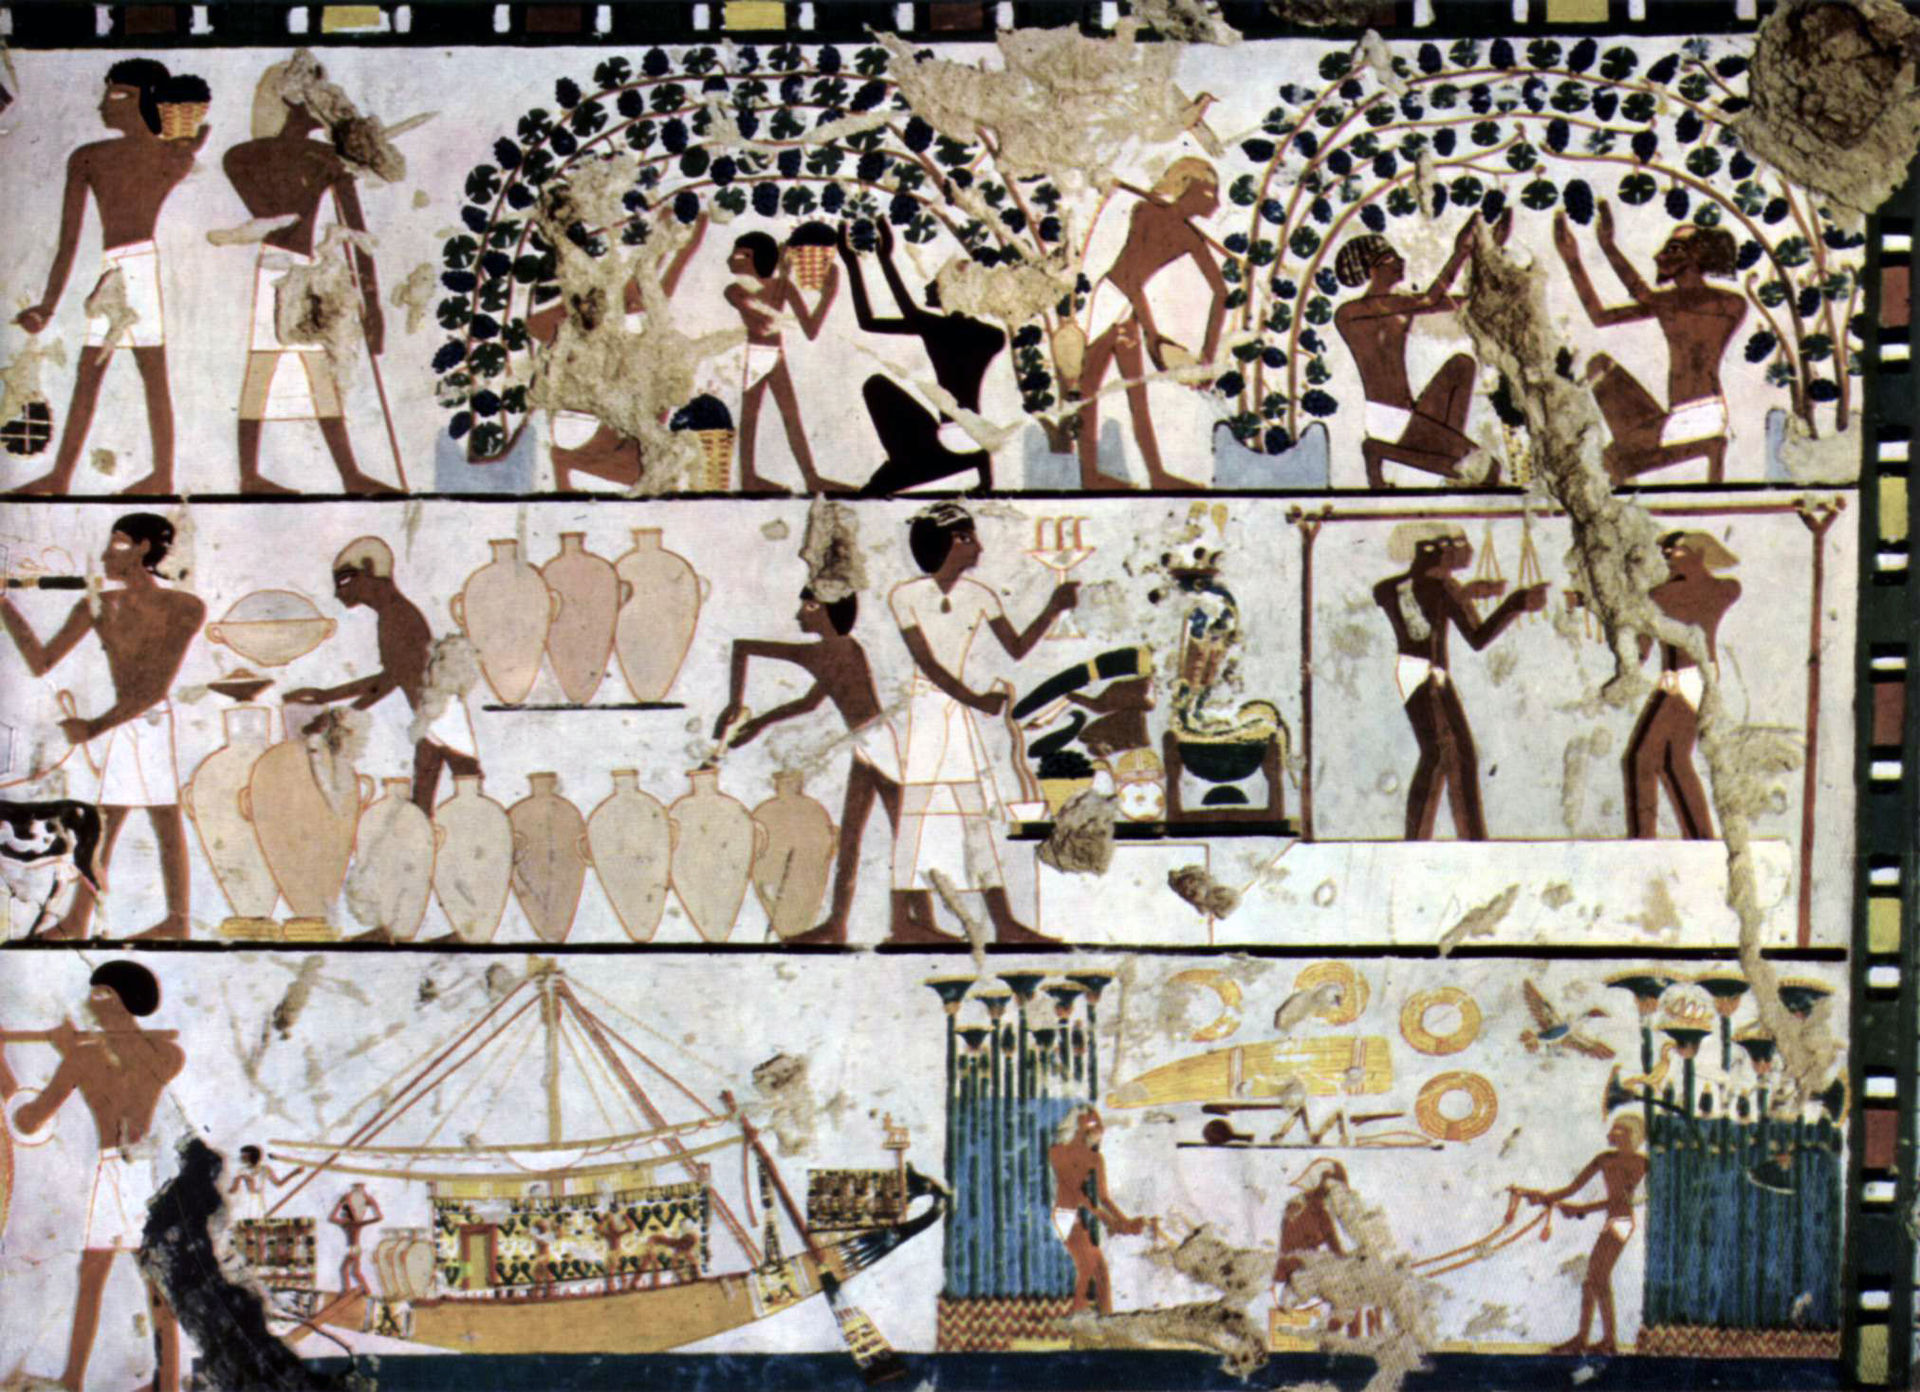 GRAPE CULTIVATION, WINEMAKING, AND COMMERCE IN ANCIENT EGYPT C.1500 BC